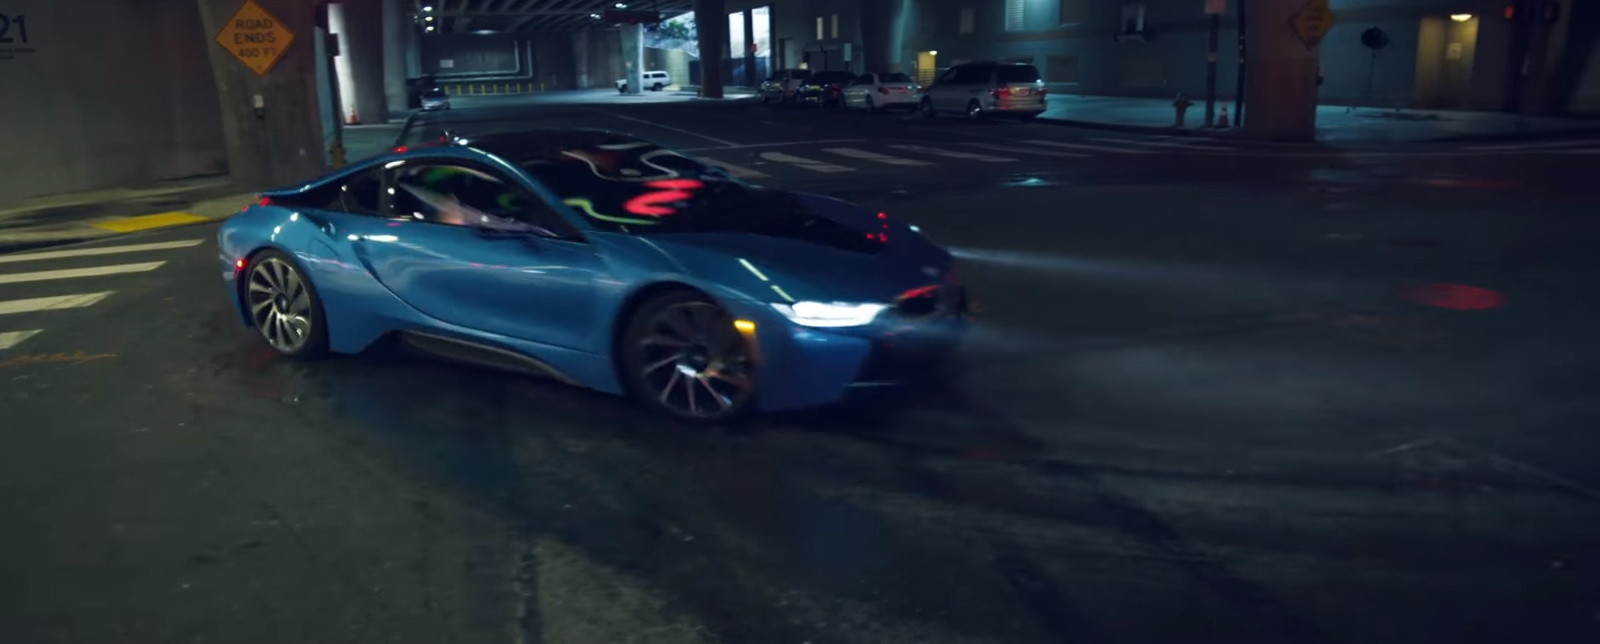 BMW i8 Car - Kendrick Lamar - LOYALTY. ft. Rihanna (2017) Official Music Video Product Placement